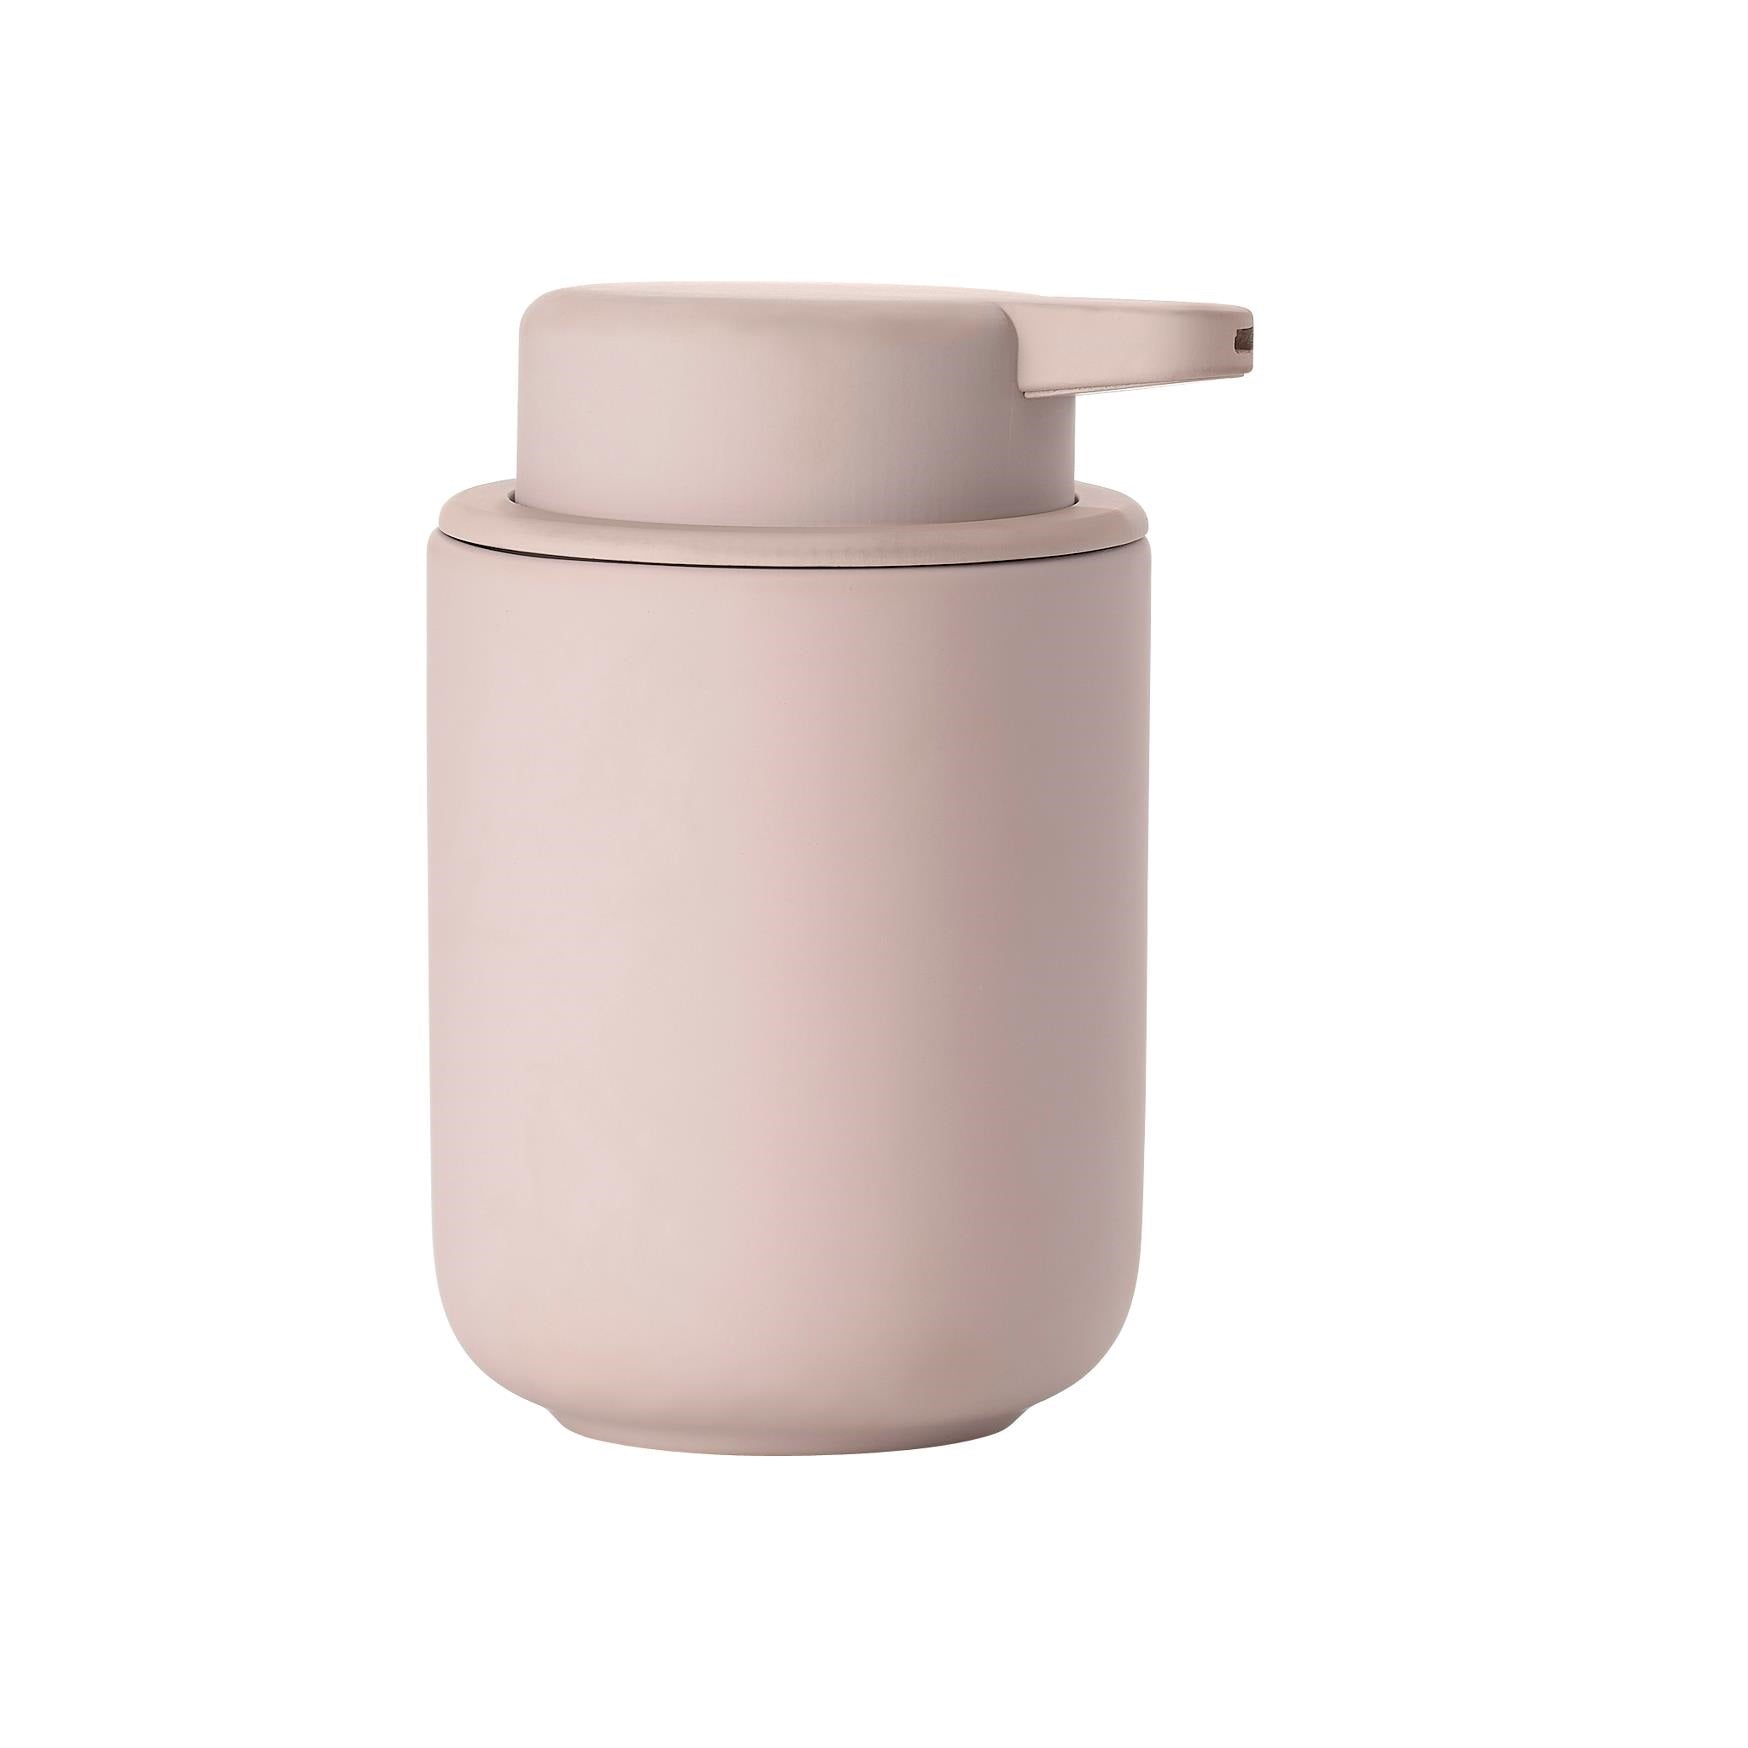 Ume Soap Dispenser- Nude